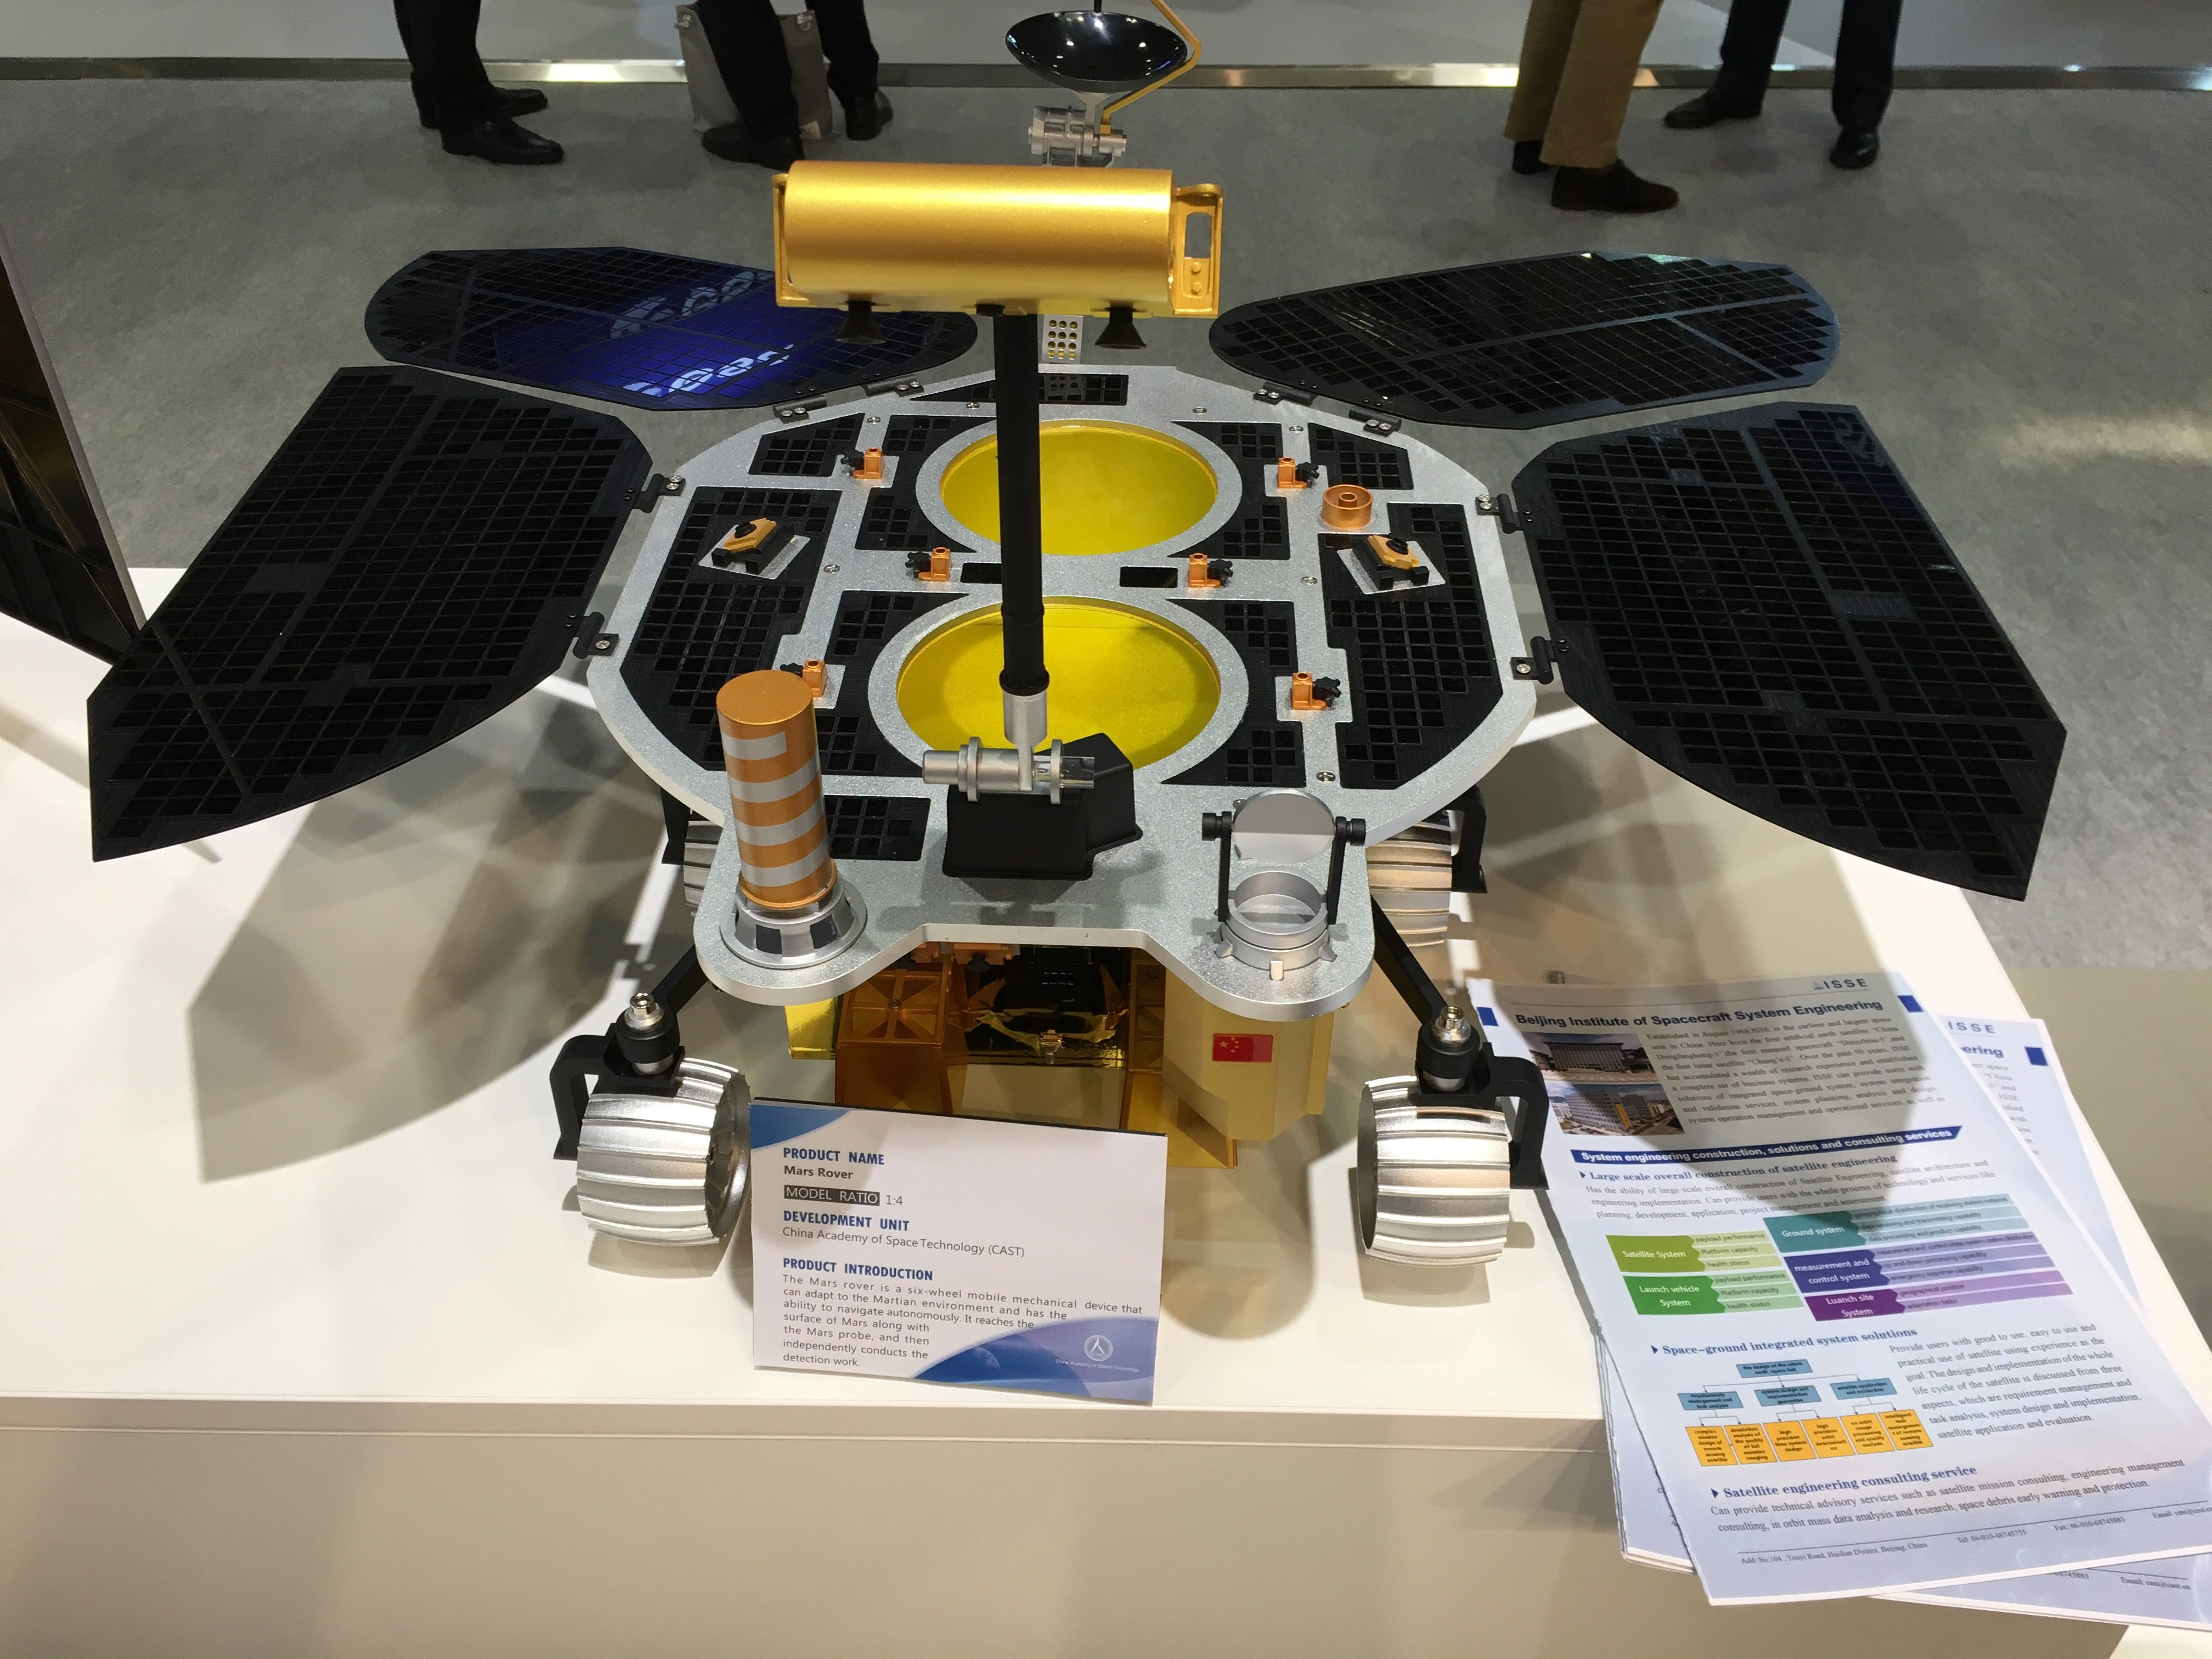 File:Mars Global Remote Sensing Orbiter and Small Rover at IAC ...